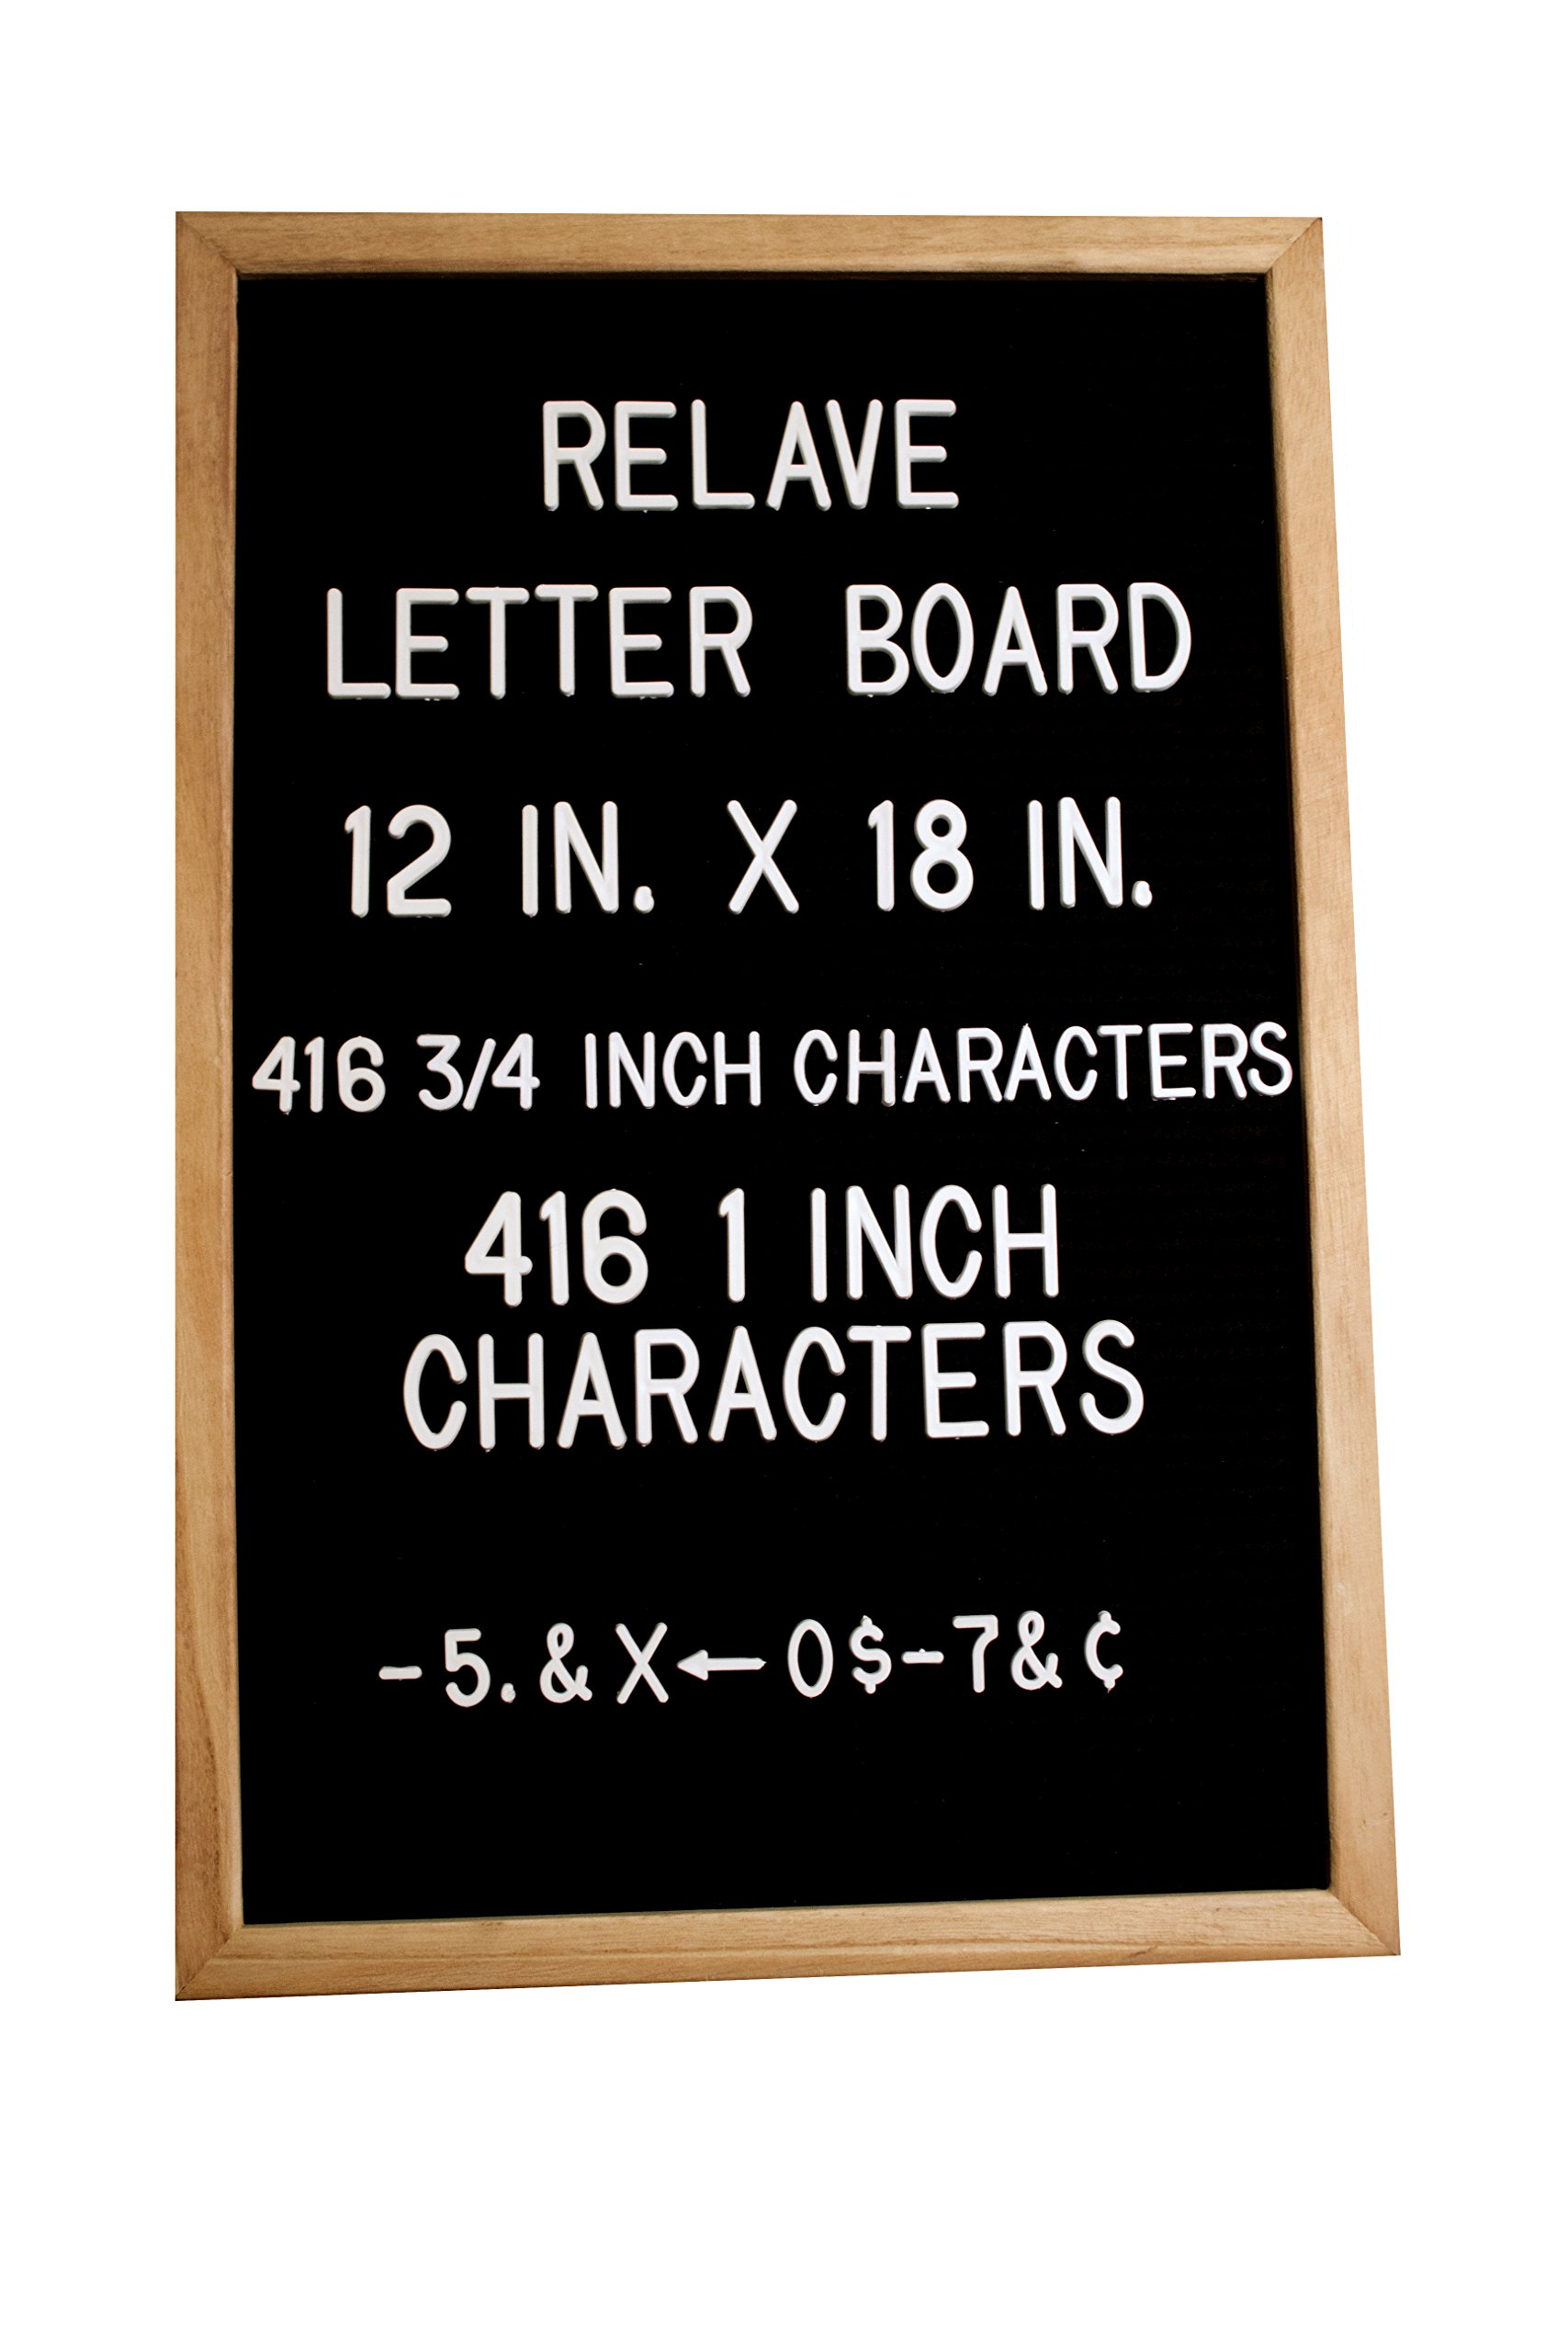 Changeable Black Felt Letter Board by Relave- 12'' x 18'', Natural Oak Wooden Frame, 416 3/4'' and 416 1'' White Letters, Great For Any Occasion